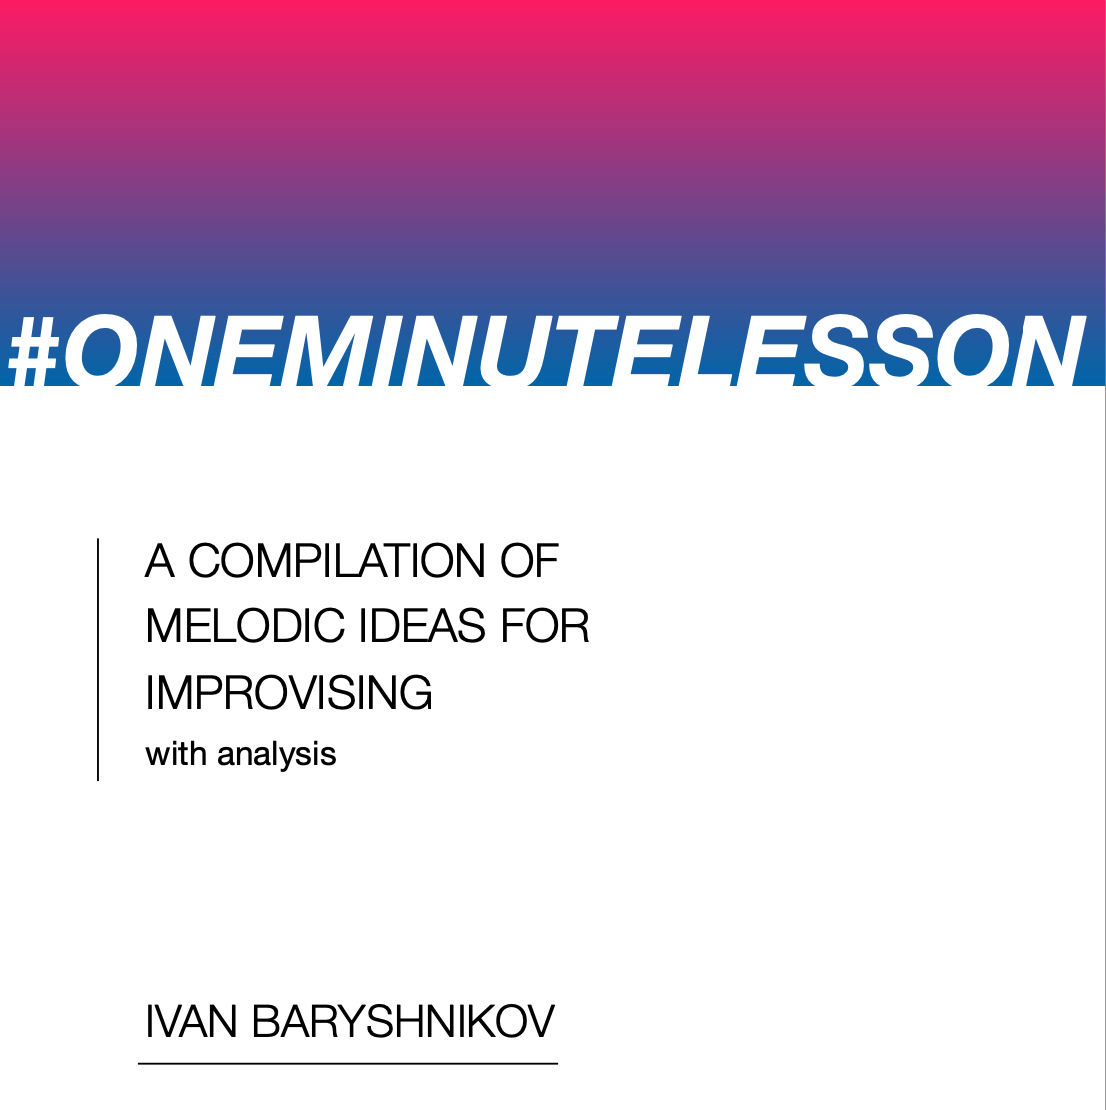 One Minute Lesson Compilation #1